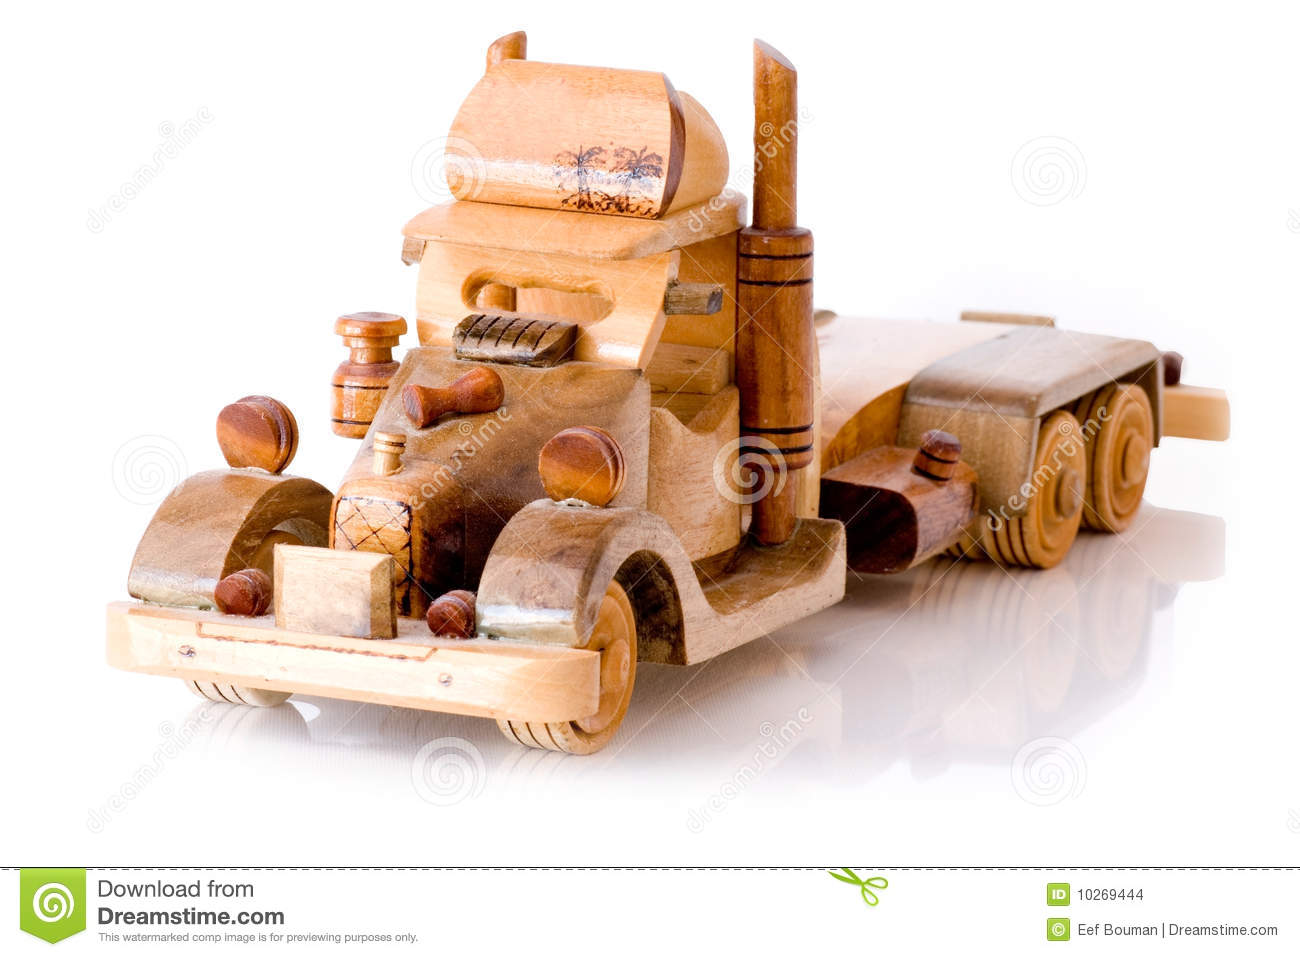 Wooden Toy Truck Stock Images - Image: 10269444